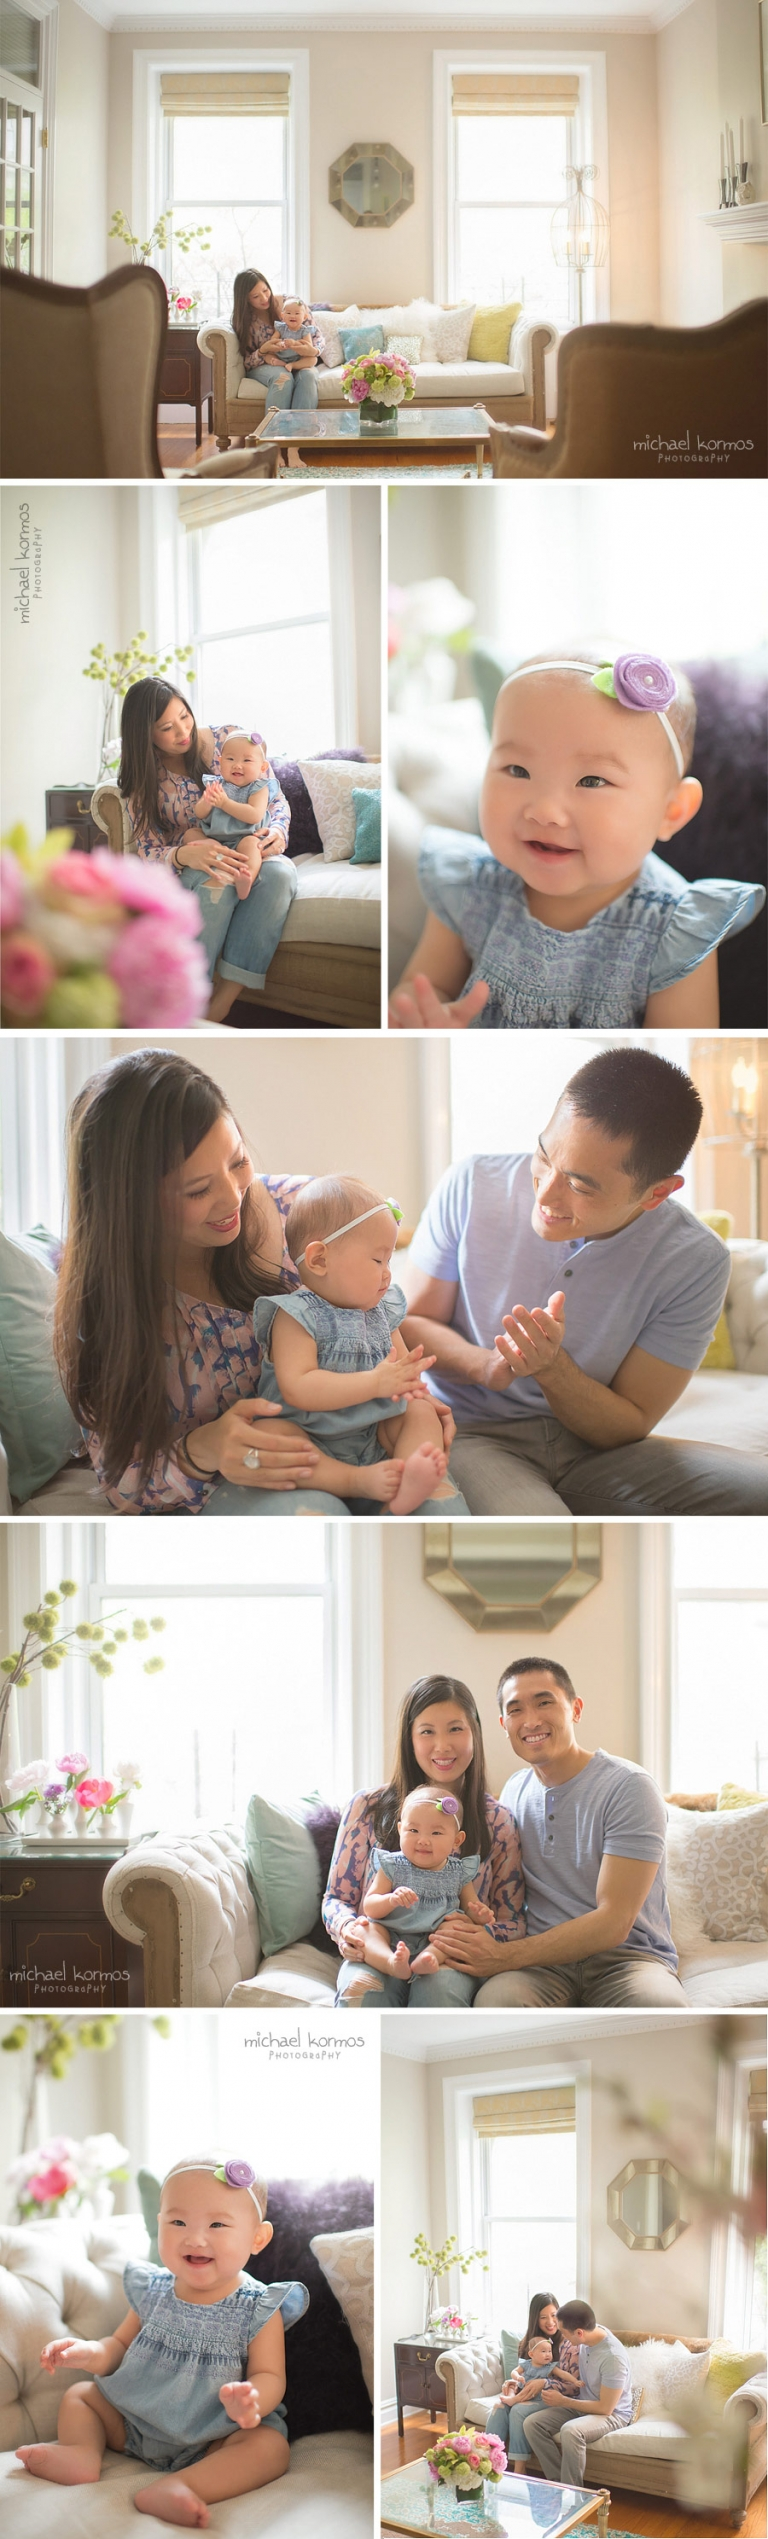 manhattan home baby photographer